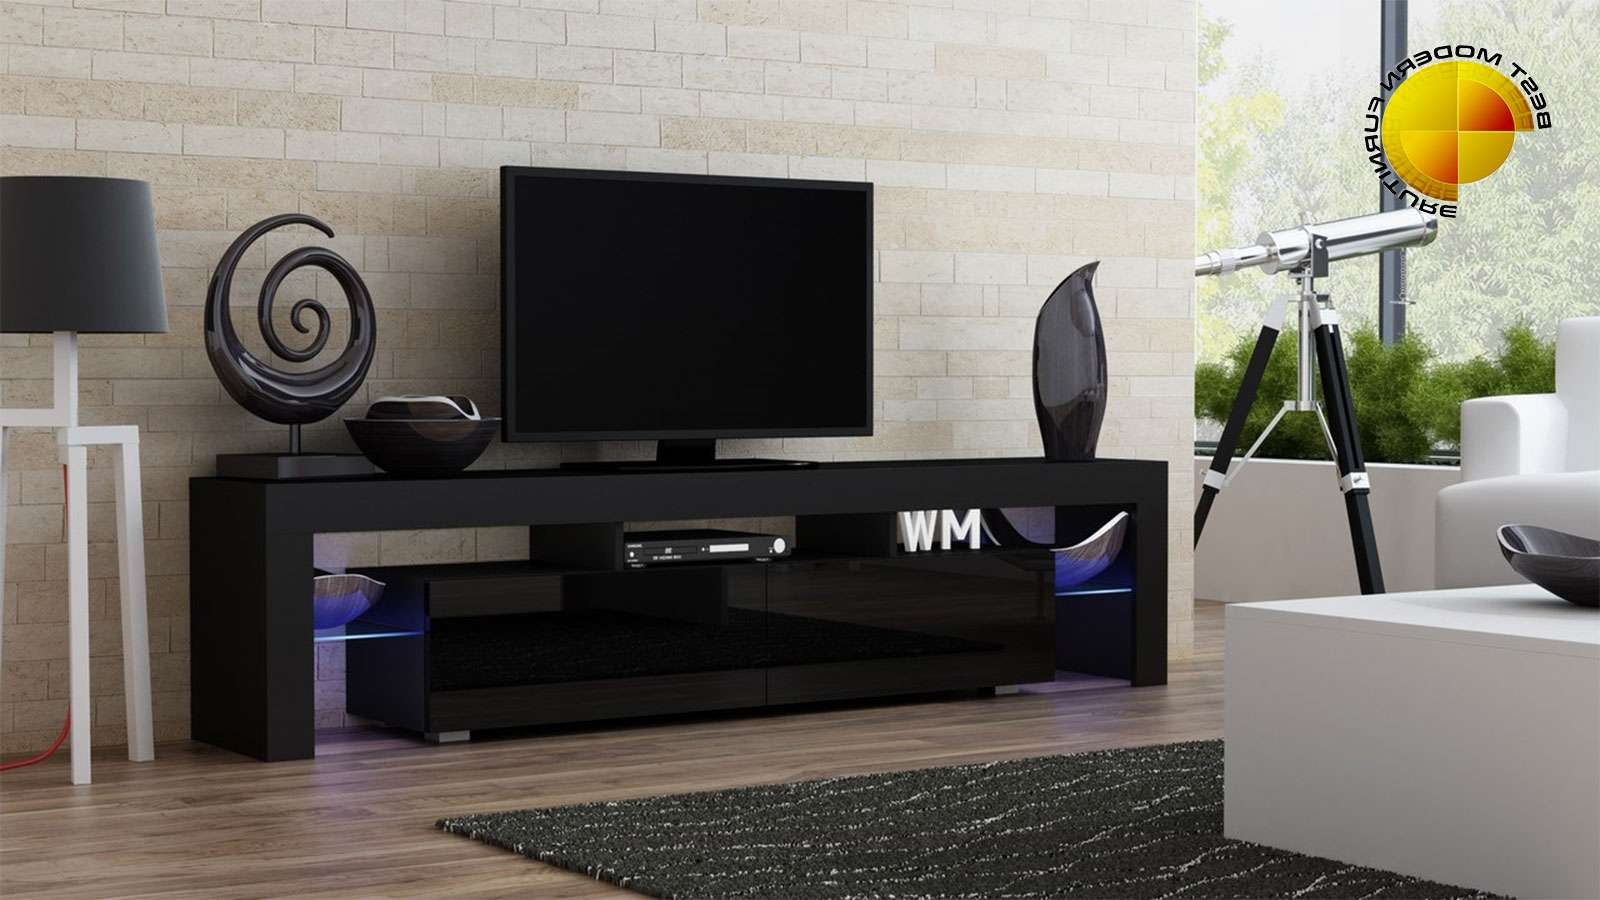 Modern Tv Stand 200cm High Gloss Cabinet Rgb Led Lights Black Unit With Regard To White And Black Tv Stands (View 9 of 15)